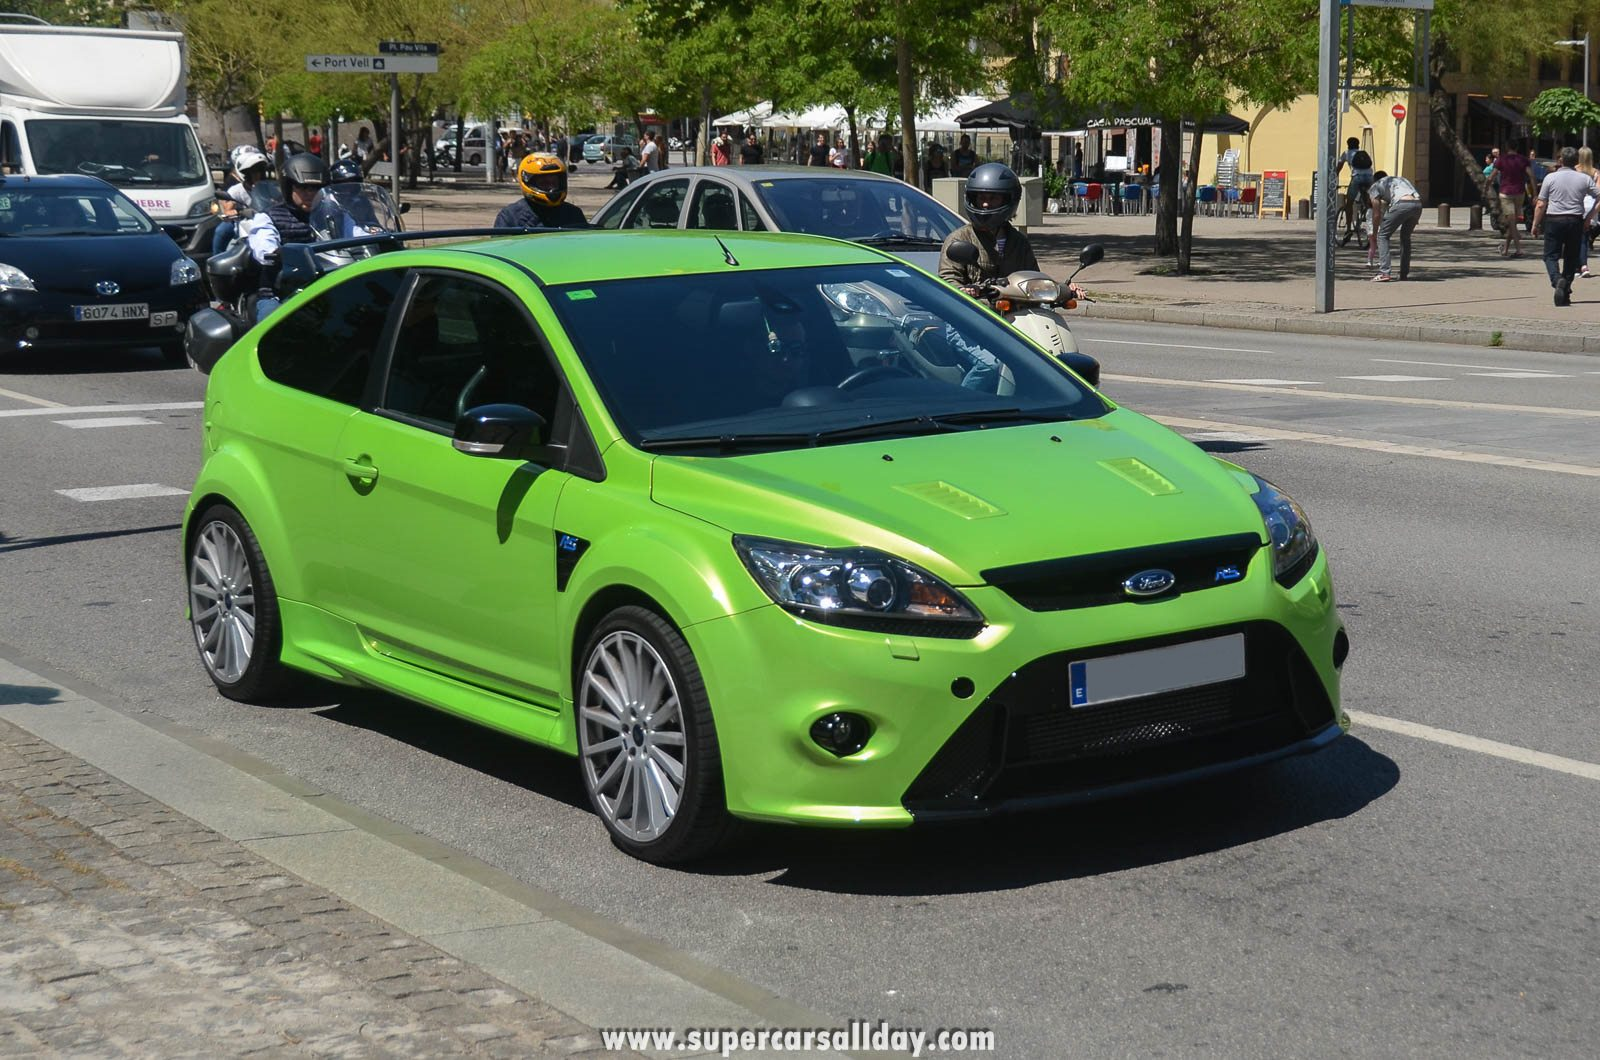 Ford Focus Rs Supercars All Day Exotic Cars Photo Car Collection